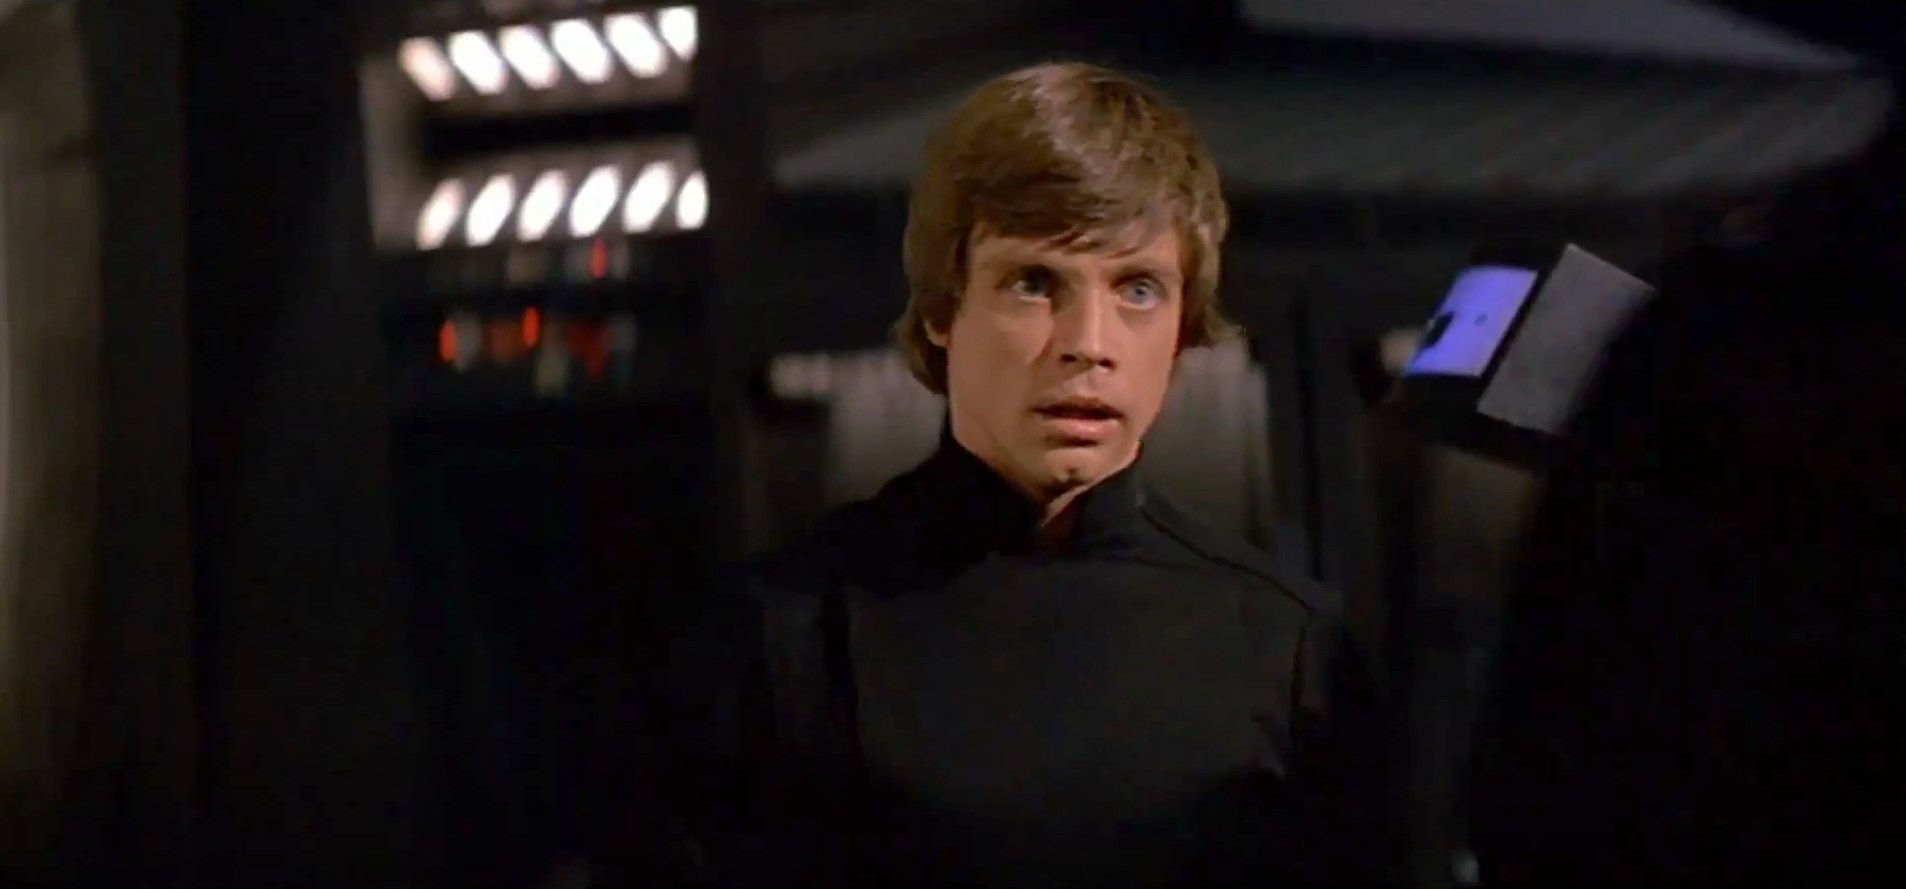 "Mark Hamill explains we should interpret Luke's sexuality however we want in ""Star Wars"""